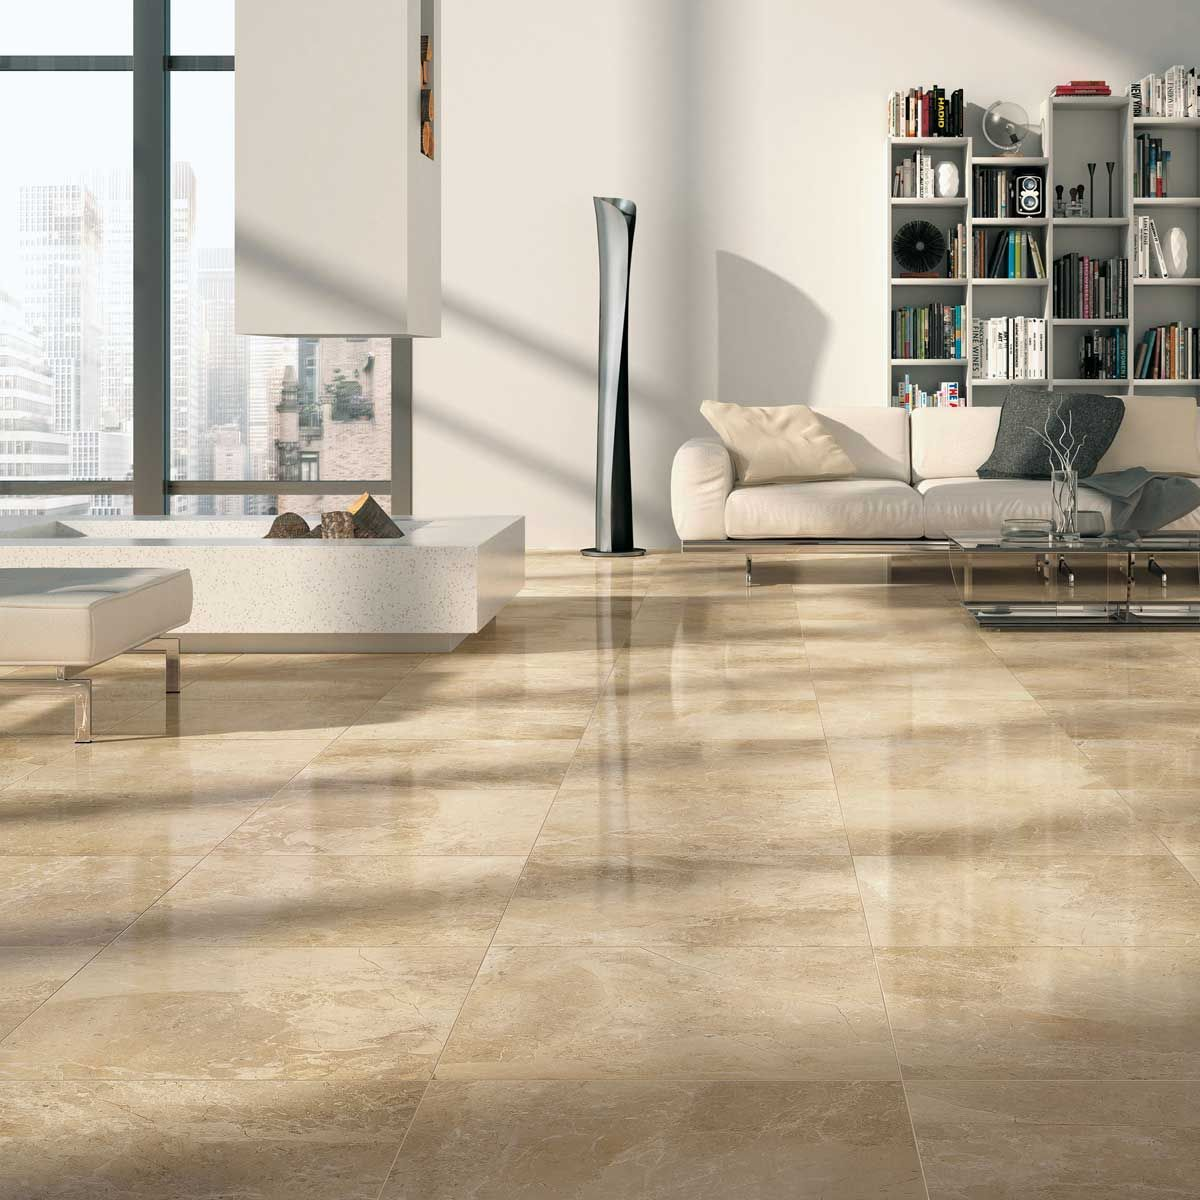 Mirage jewels encore opera beige marble look polished porcelain mirage jewels encore opera beige marble look polished porcelain tiles available at ceramo dailygadgetfo Gallery